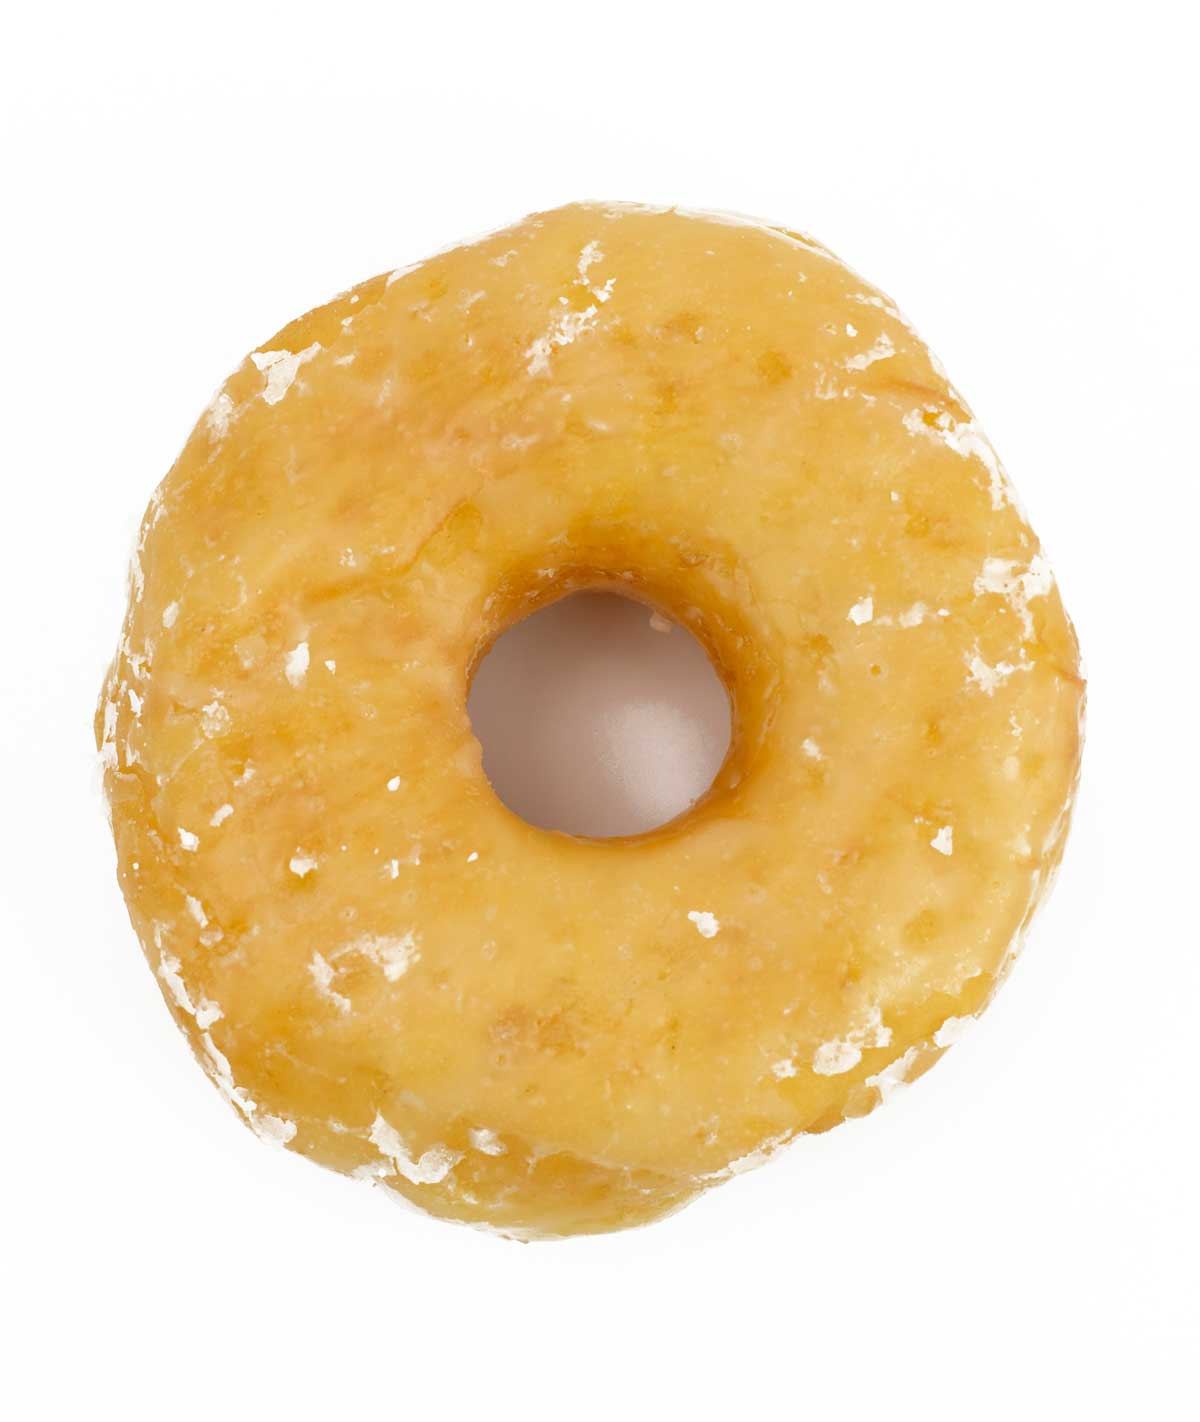 picture of glazed donut at Shipley's Do-Nuts in Little Rock